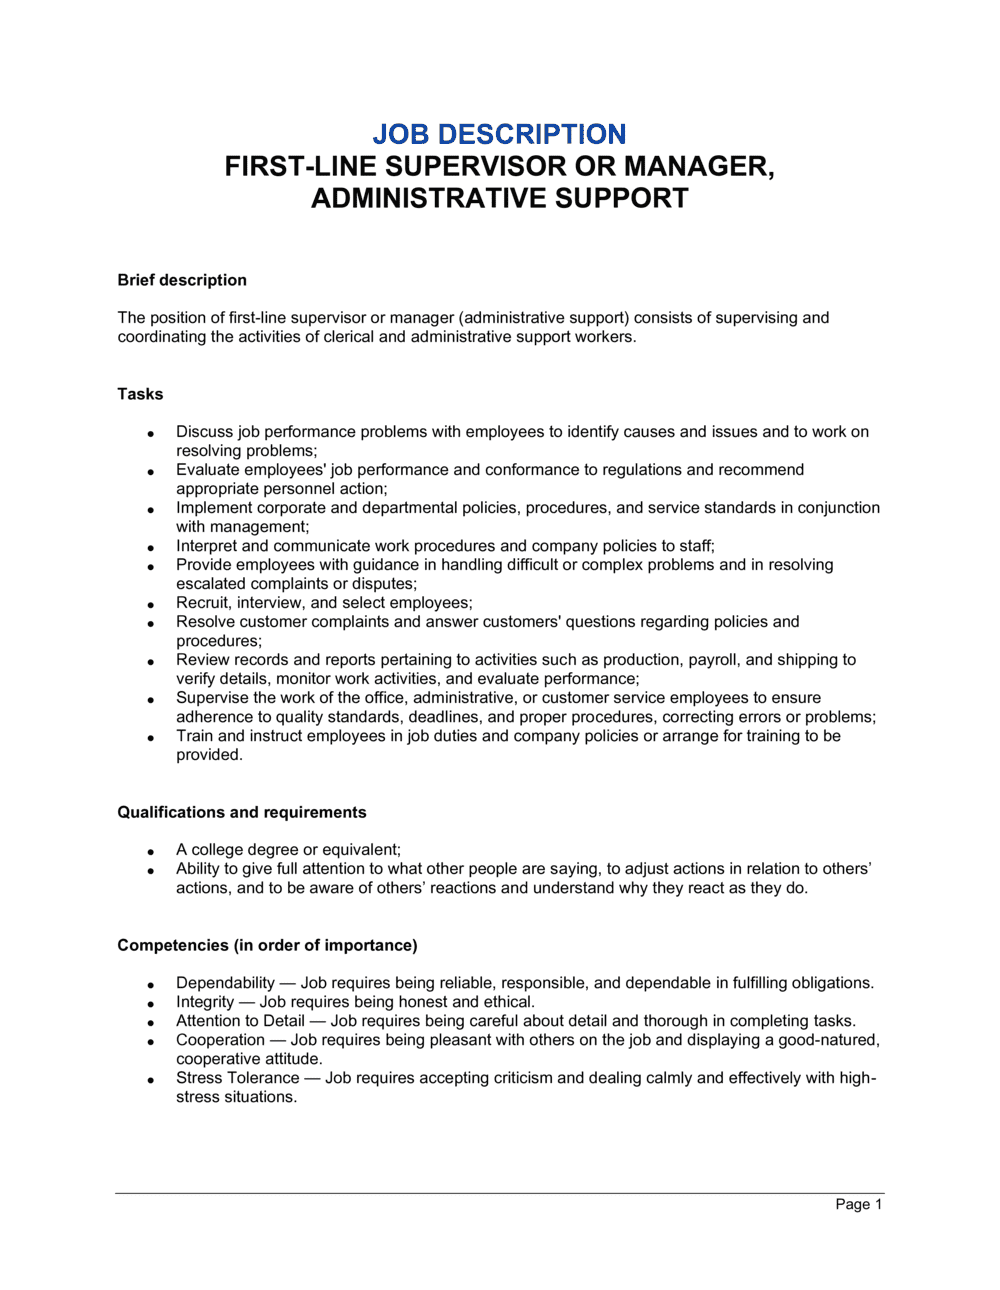 Business-in-a-Box's First-Line Supervisor or Manager, Administrative Support Job Description Template